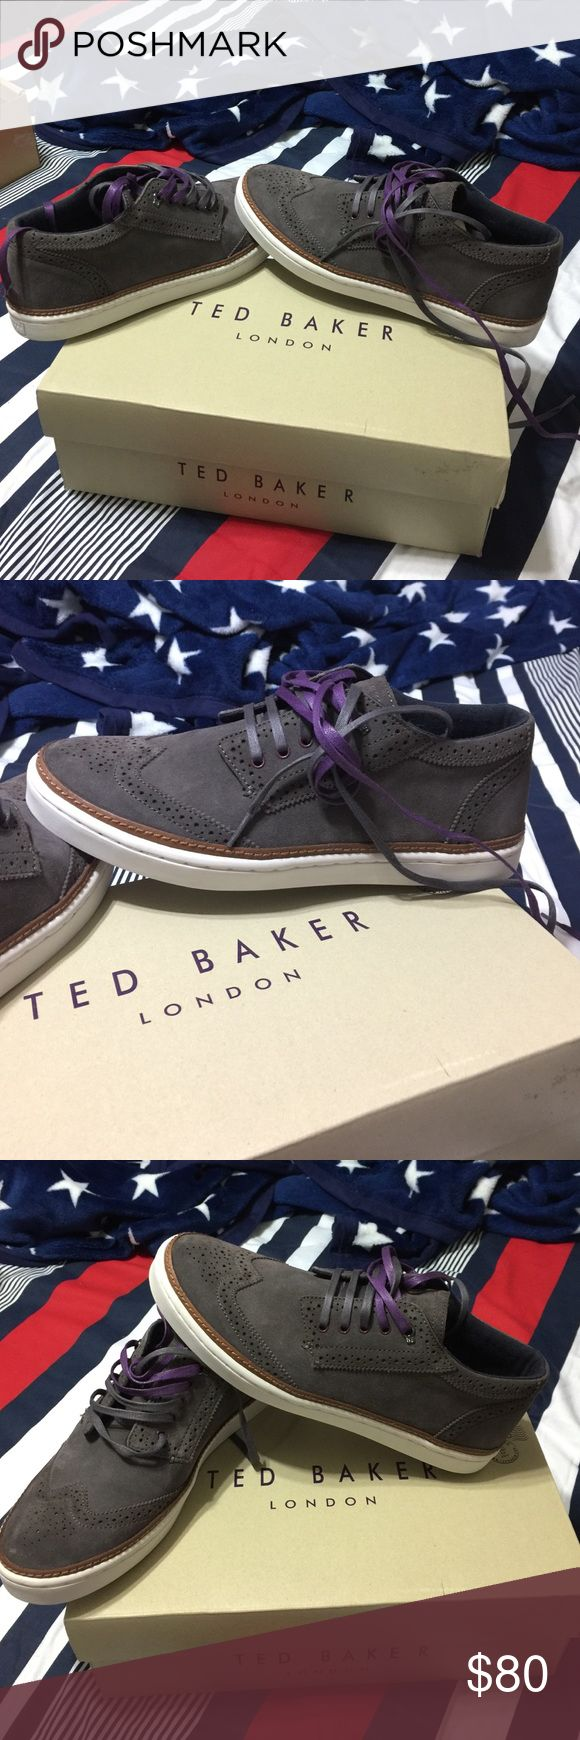 TED BAKER MEN SIZE 9 ORIGINAL TED BAKER SNEAKERS MEN SIZE 9 Ted Baker Shoes Sneakers